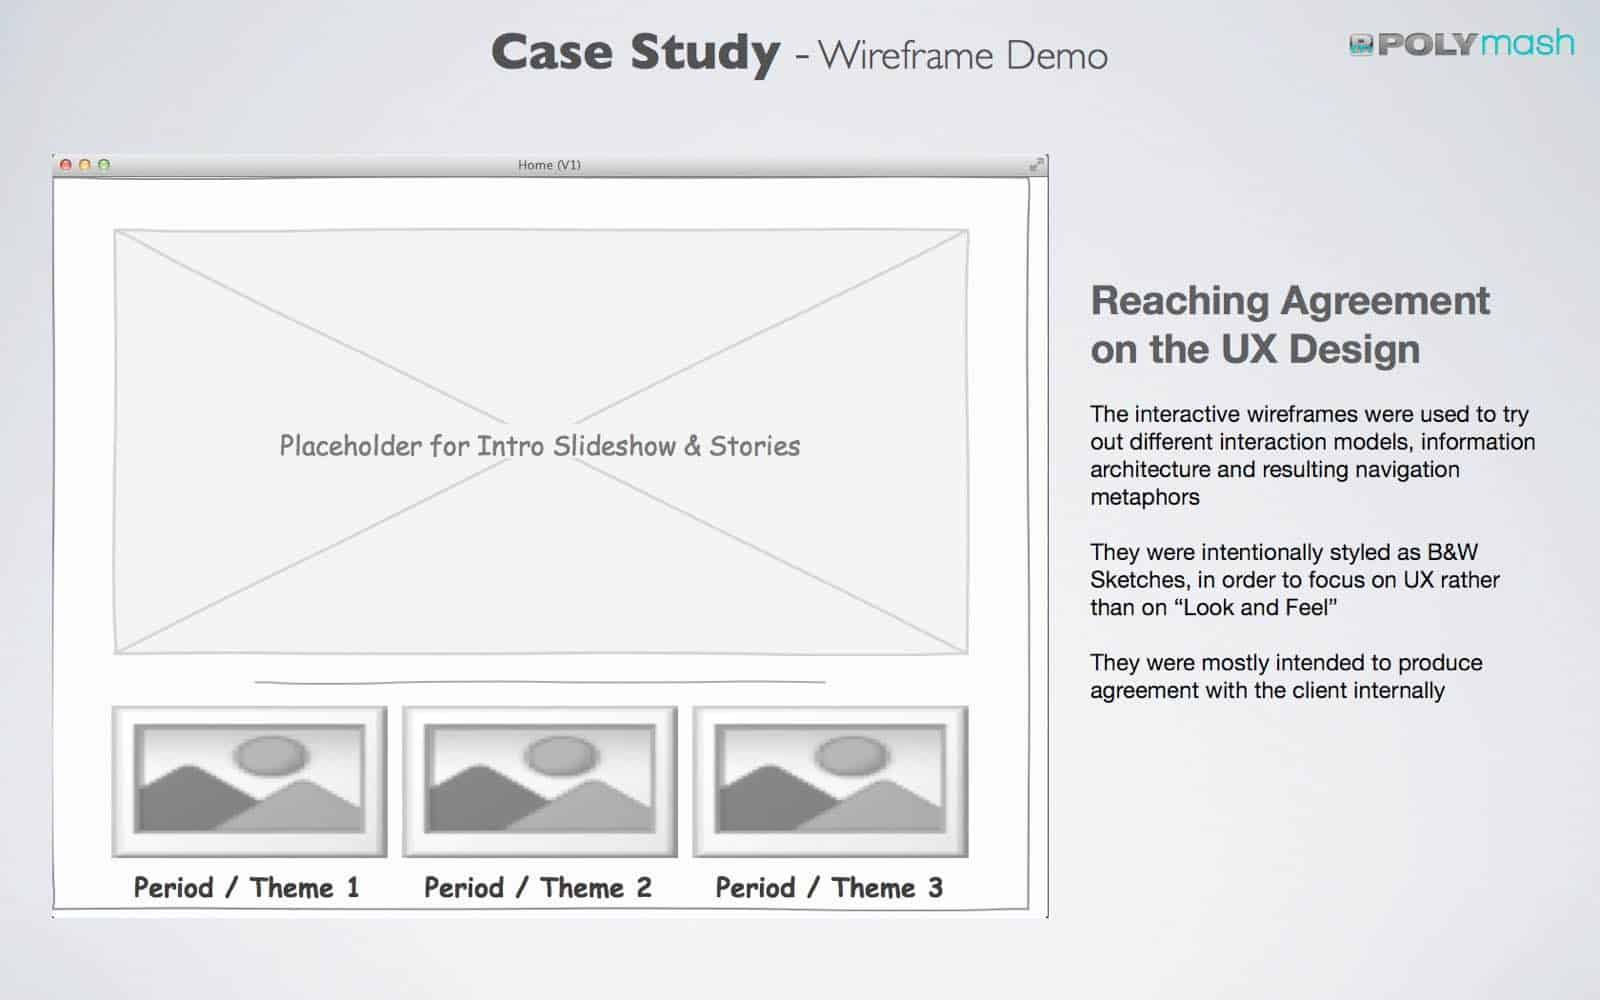 UX Case Study: We used rough wireframes to communicate, test and eventually agree on navigation metaphors